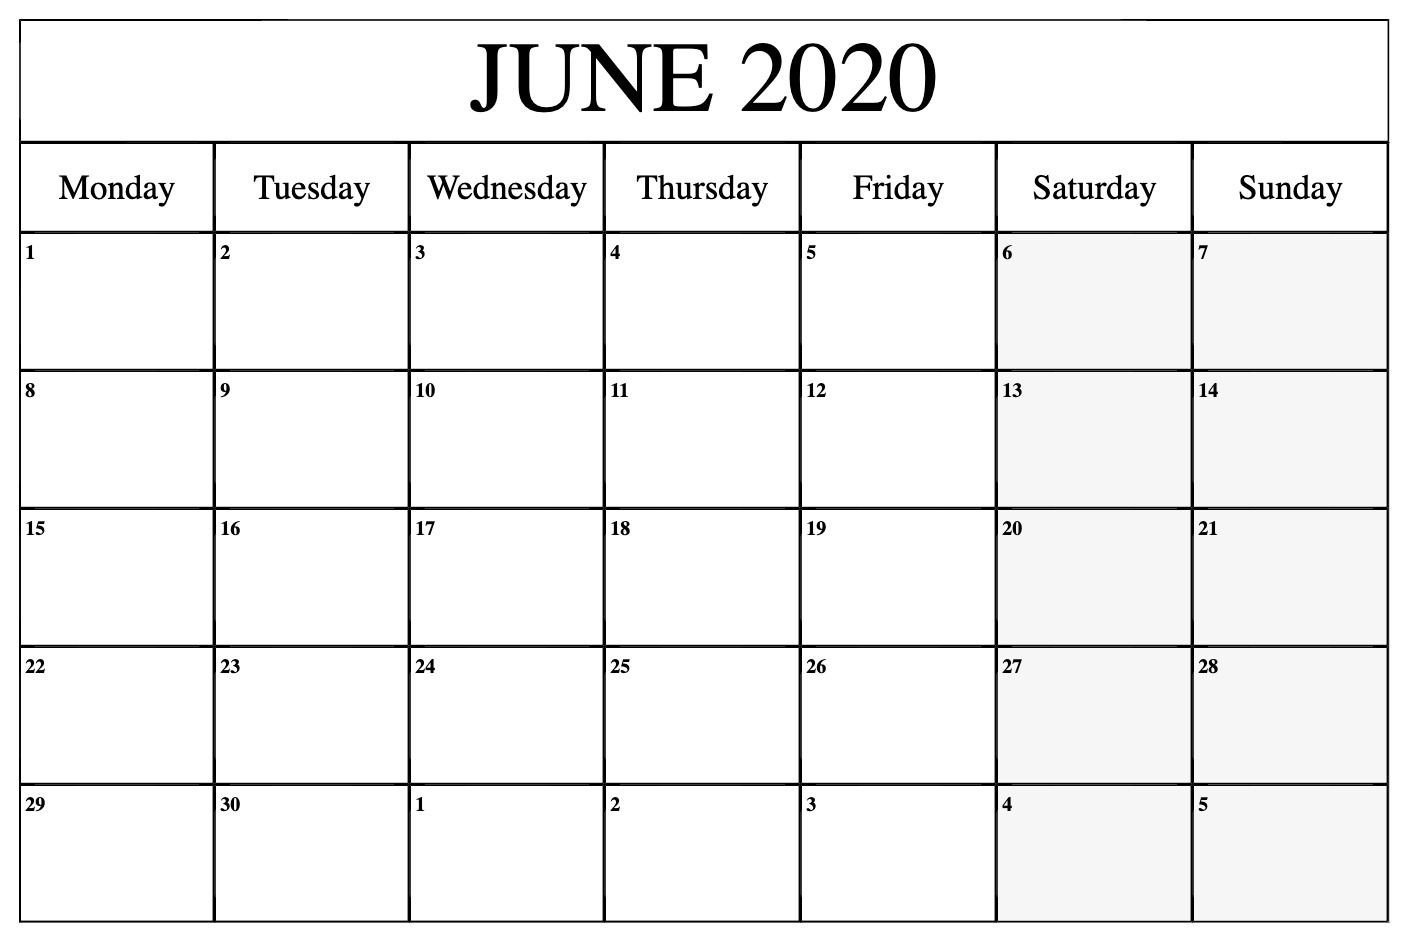 Free Editable June 2020 Calendar To Print Pdf Word Blank-Blank June Calendar Template 2020